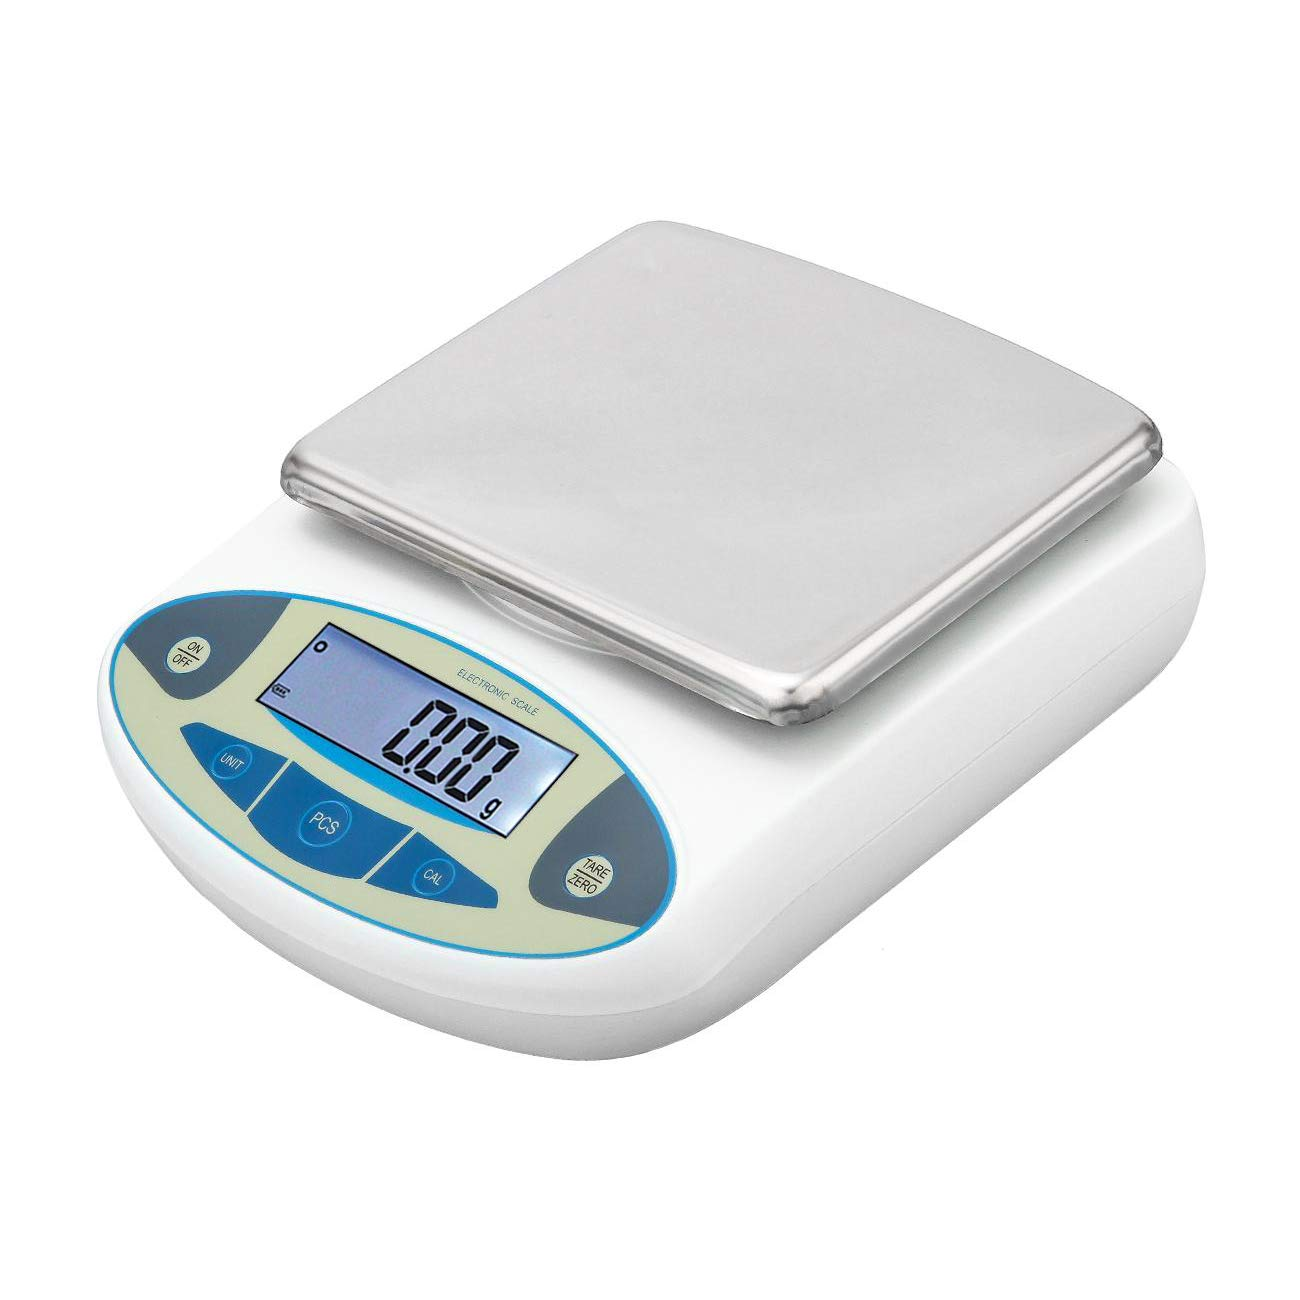 WICHEMI Lab Analytical Electronic Balance Scale 0.01/5000 Gram Scale Laboratory Balance Digital Kitchen Balance Scale Jewelry Gold Scale High Precision Balance Weighing Scales